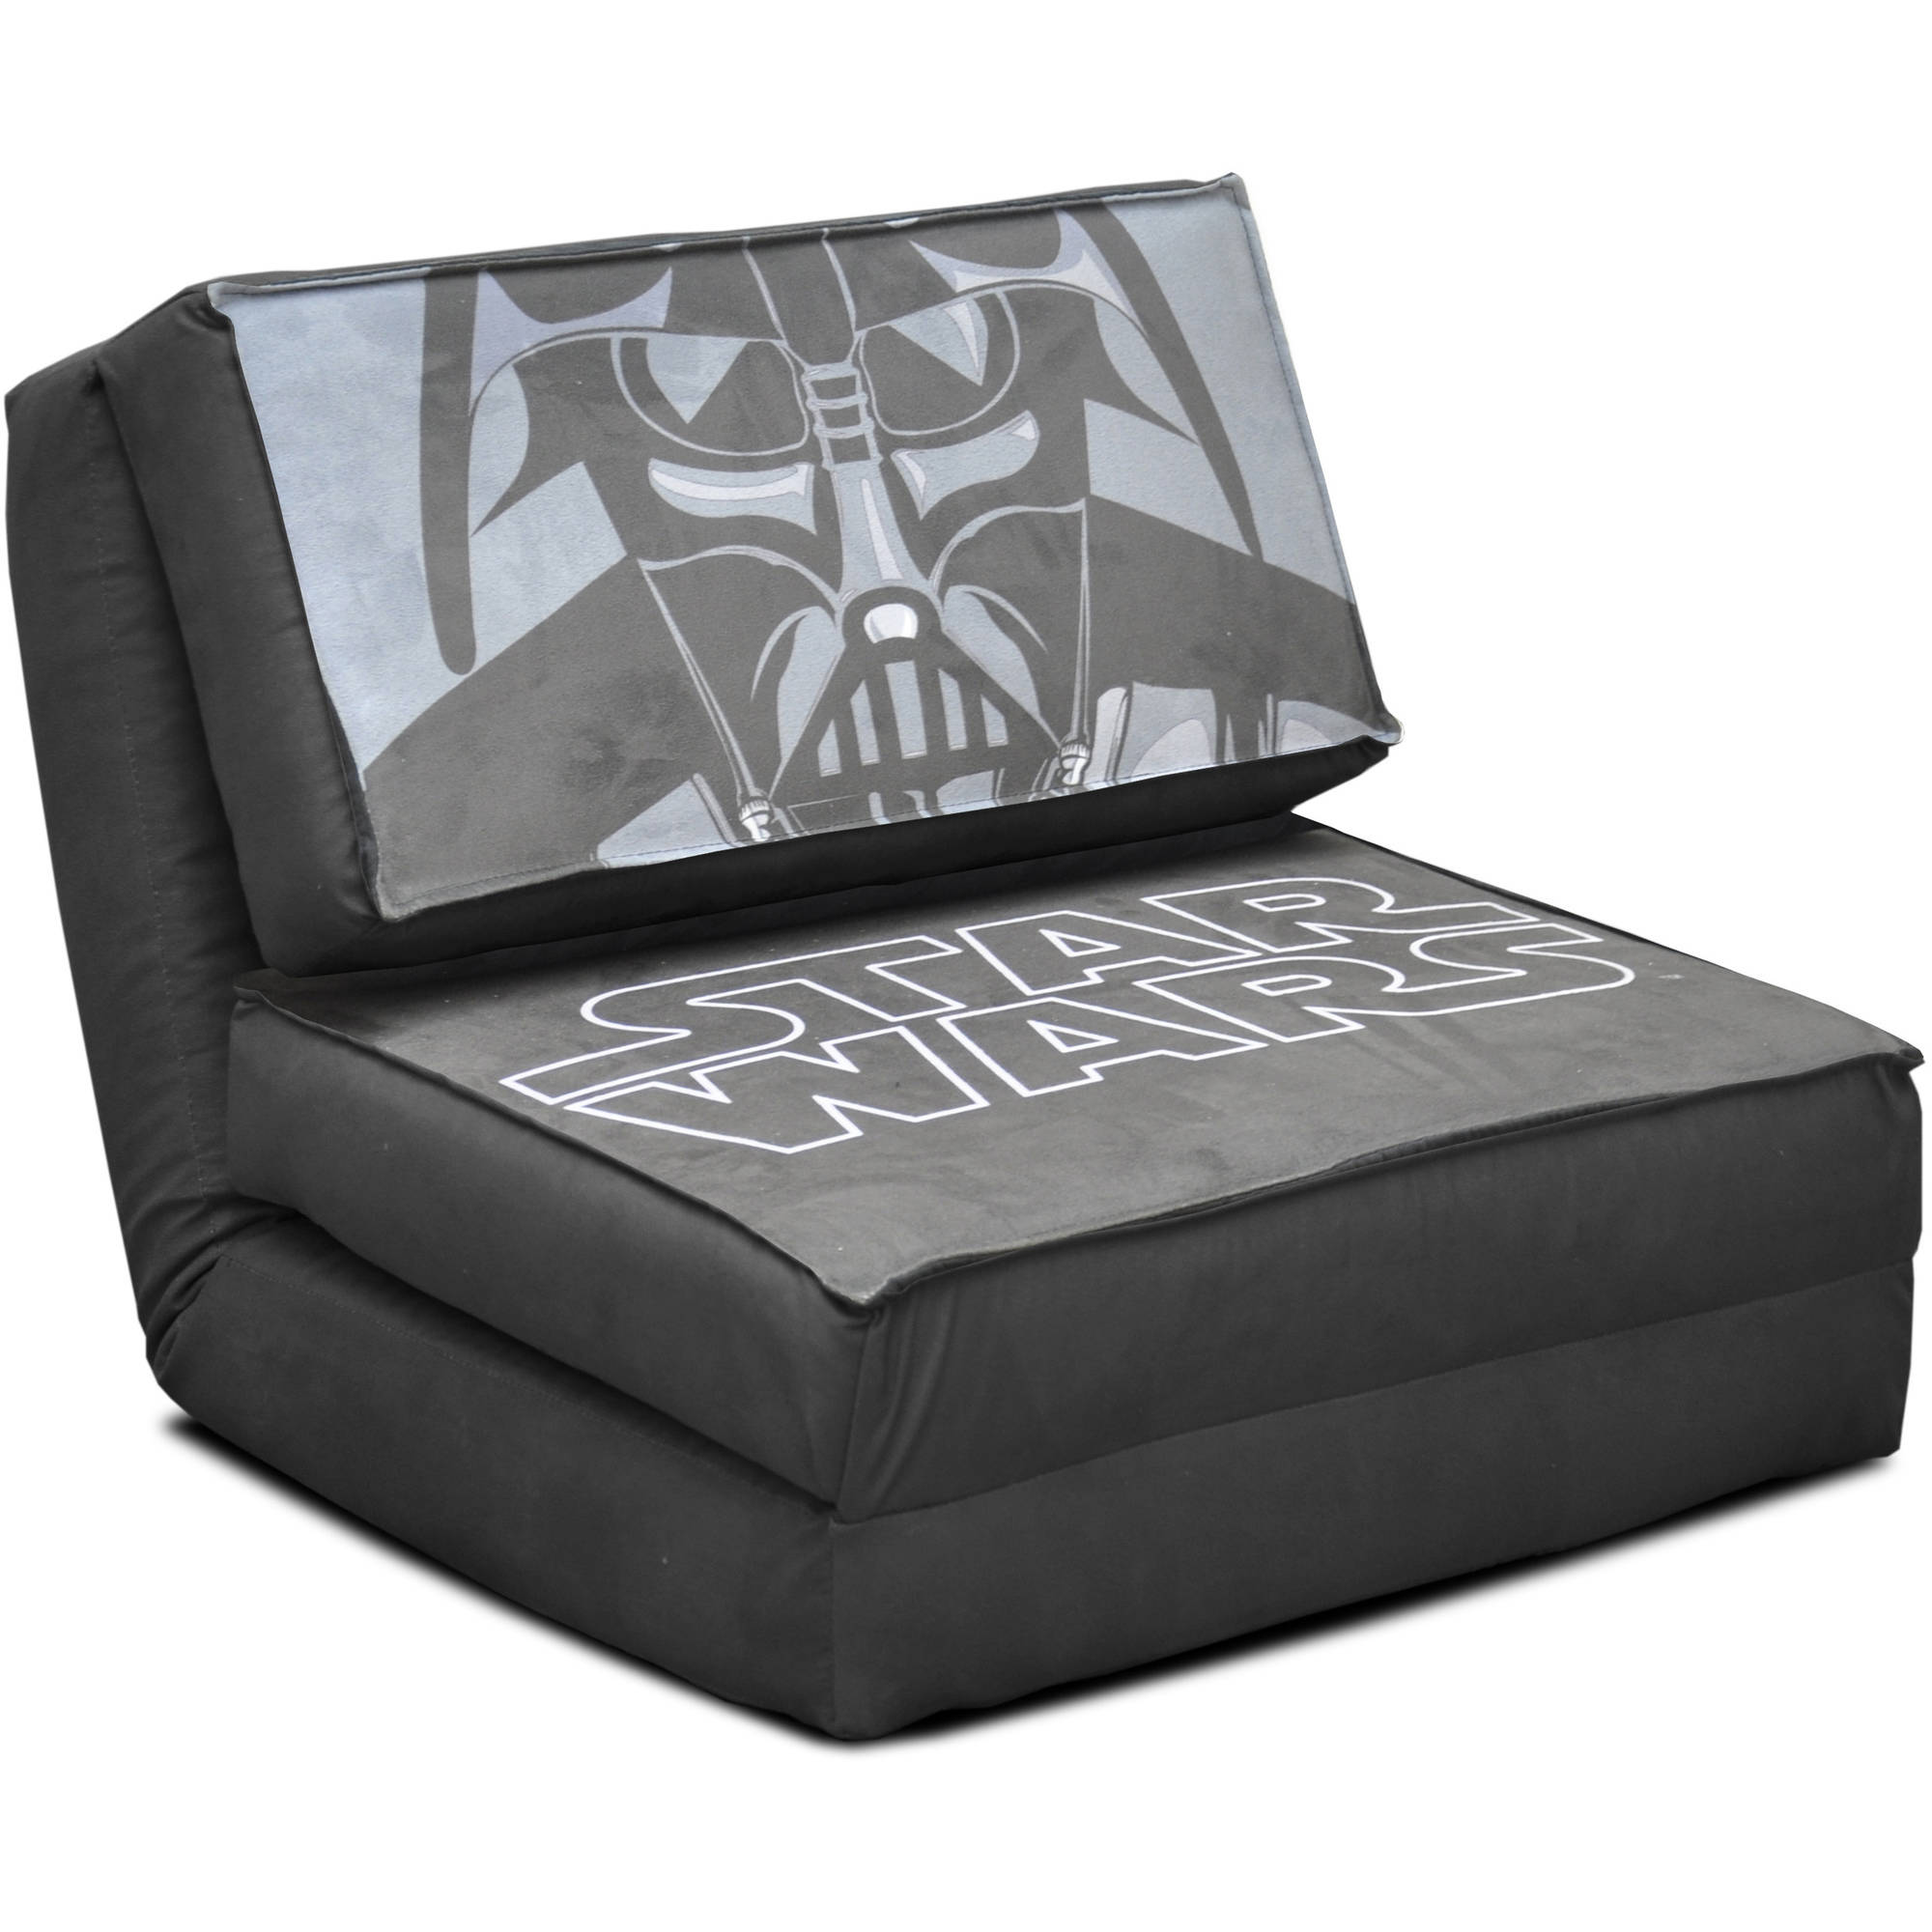 tween flip sofa solid wood frame sectional star wars kids chair darth vader reclining lounge